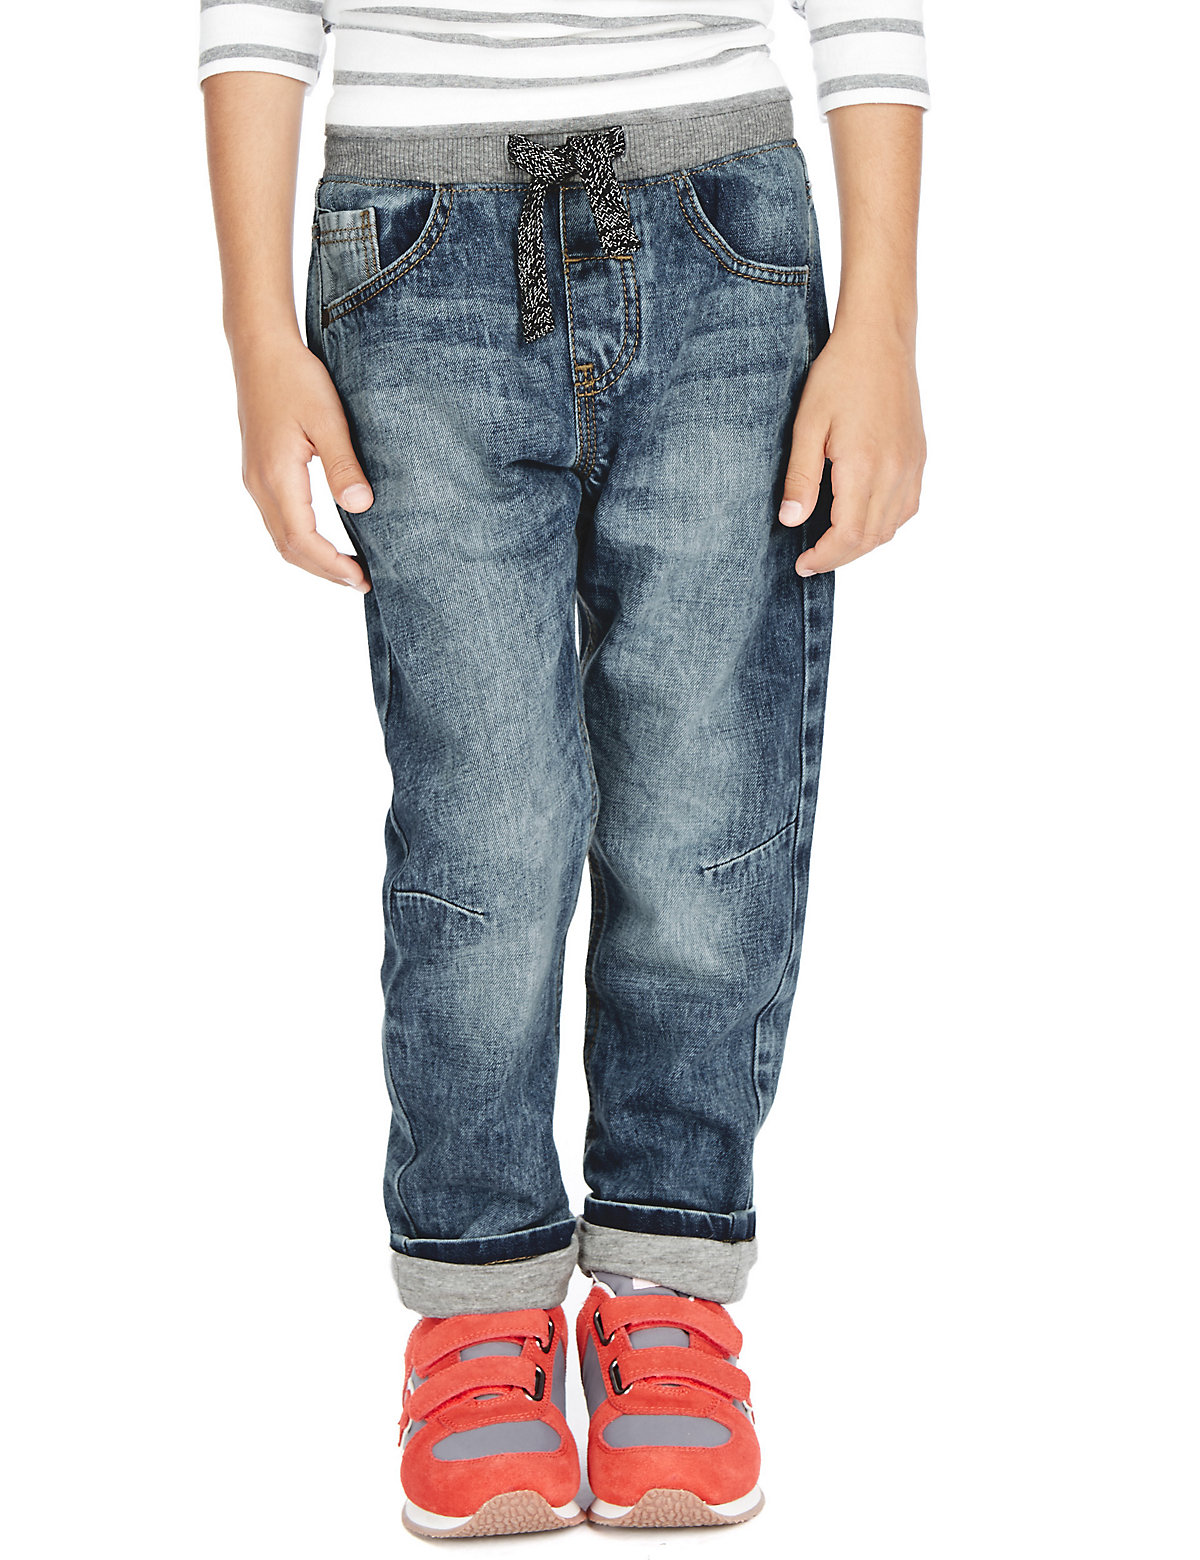 Pure Cotton Pull On Denim Jeans (1-7 Years)